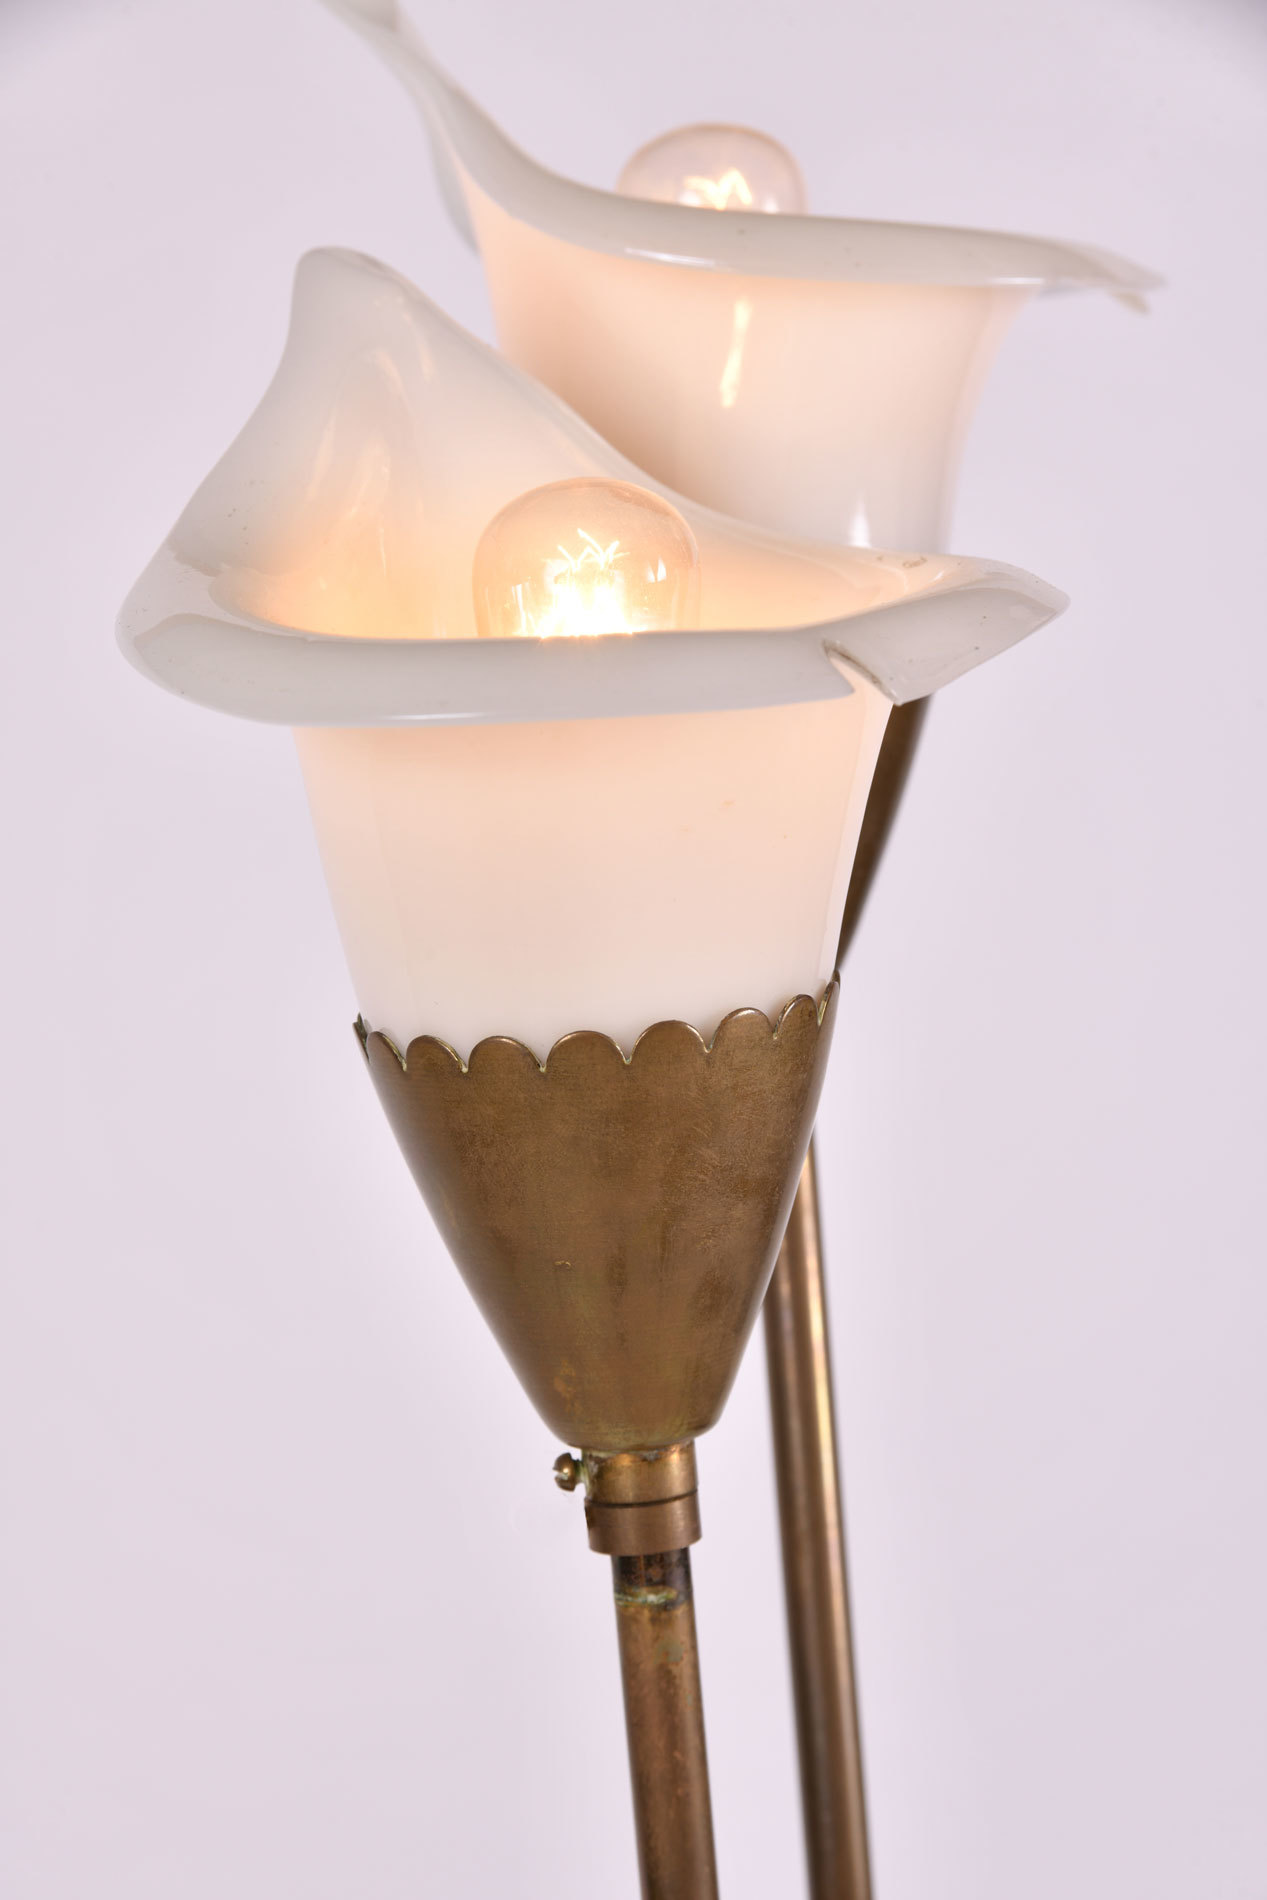 The image for Lillies Standard Lamp 06